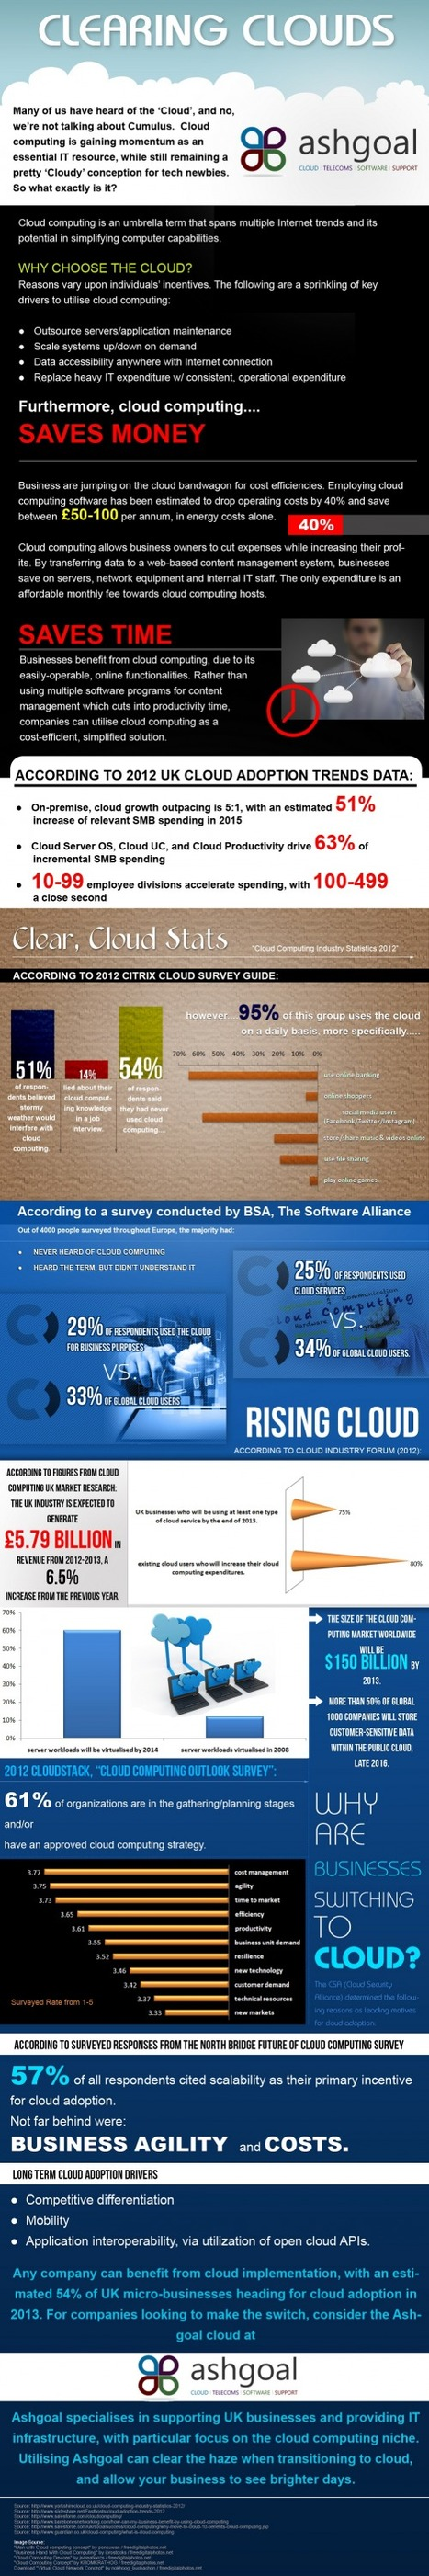 INFOGRAPHIC: Clearing Clouds | AshGoal.com | SBWire Mediawire | Didactics and Technology in Education | Scoop.it